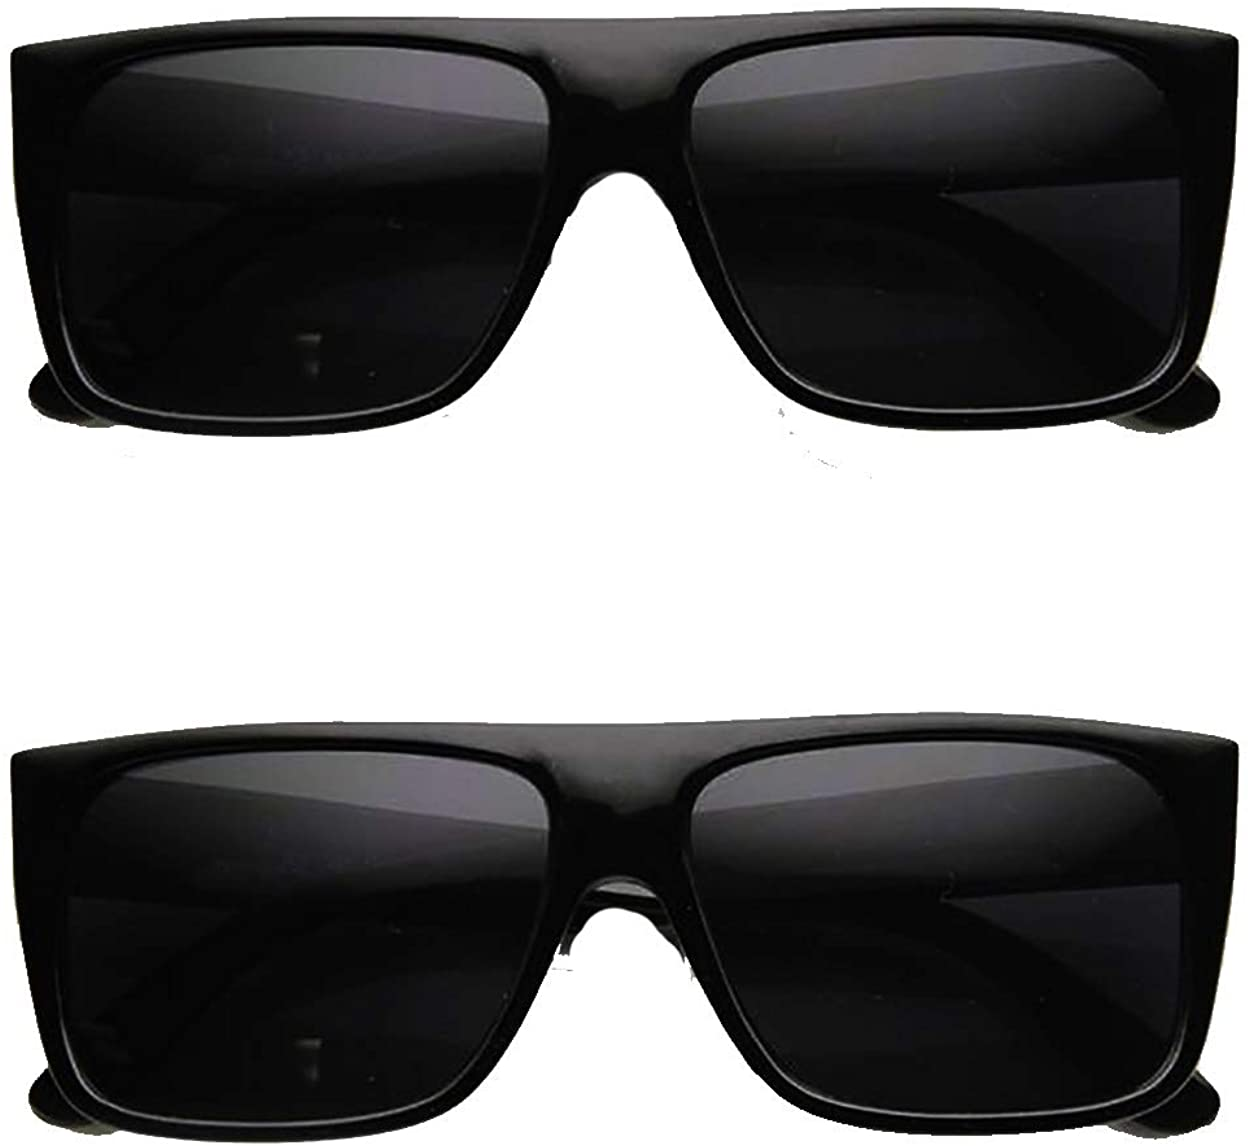 Online limited product Super Dark Colorado Springs Mall Lens Sunglasses - eyes sensitive for